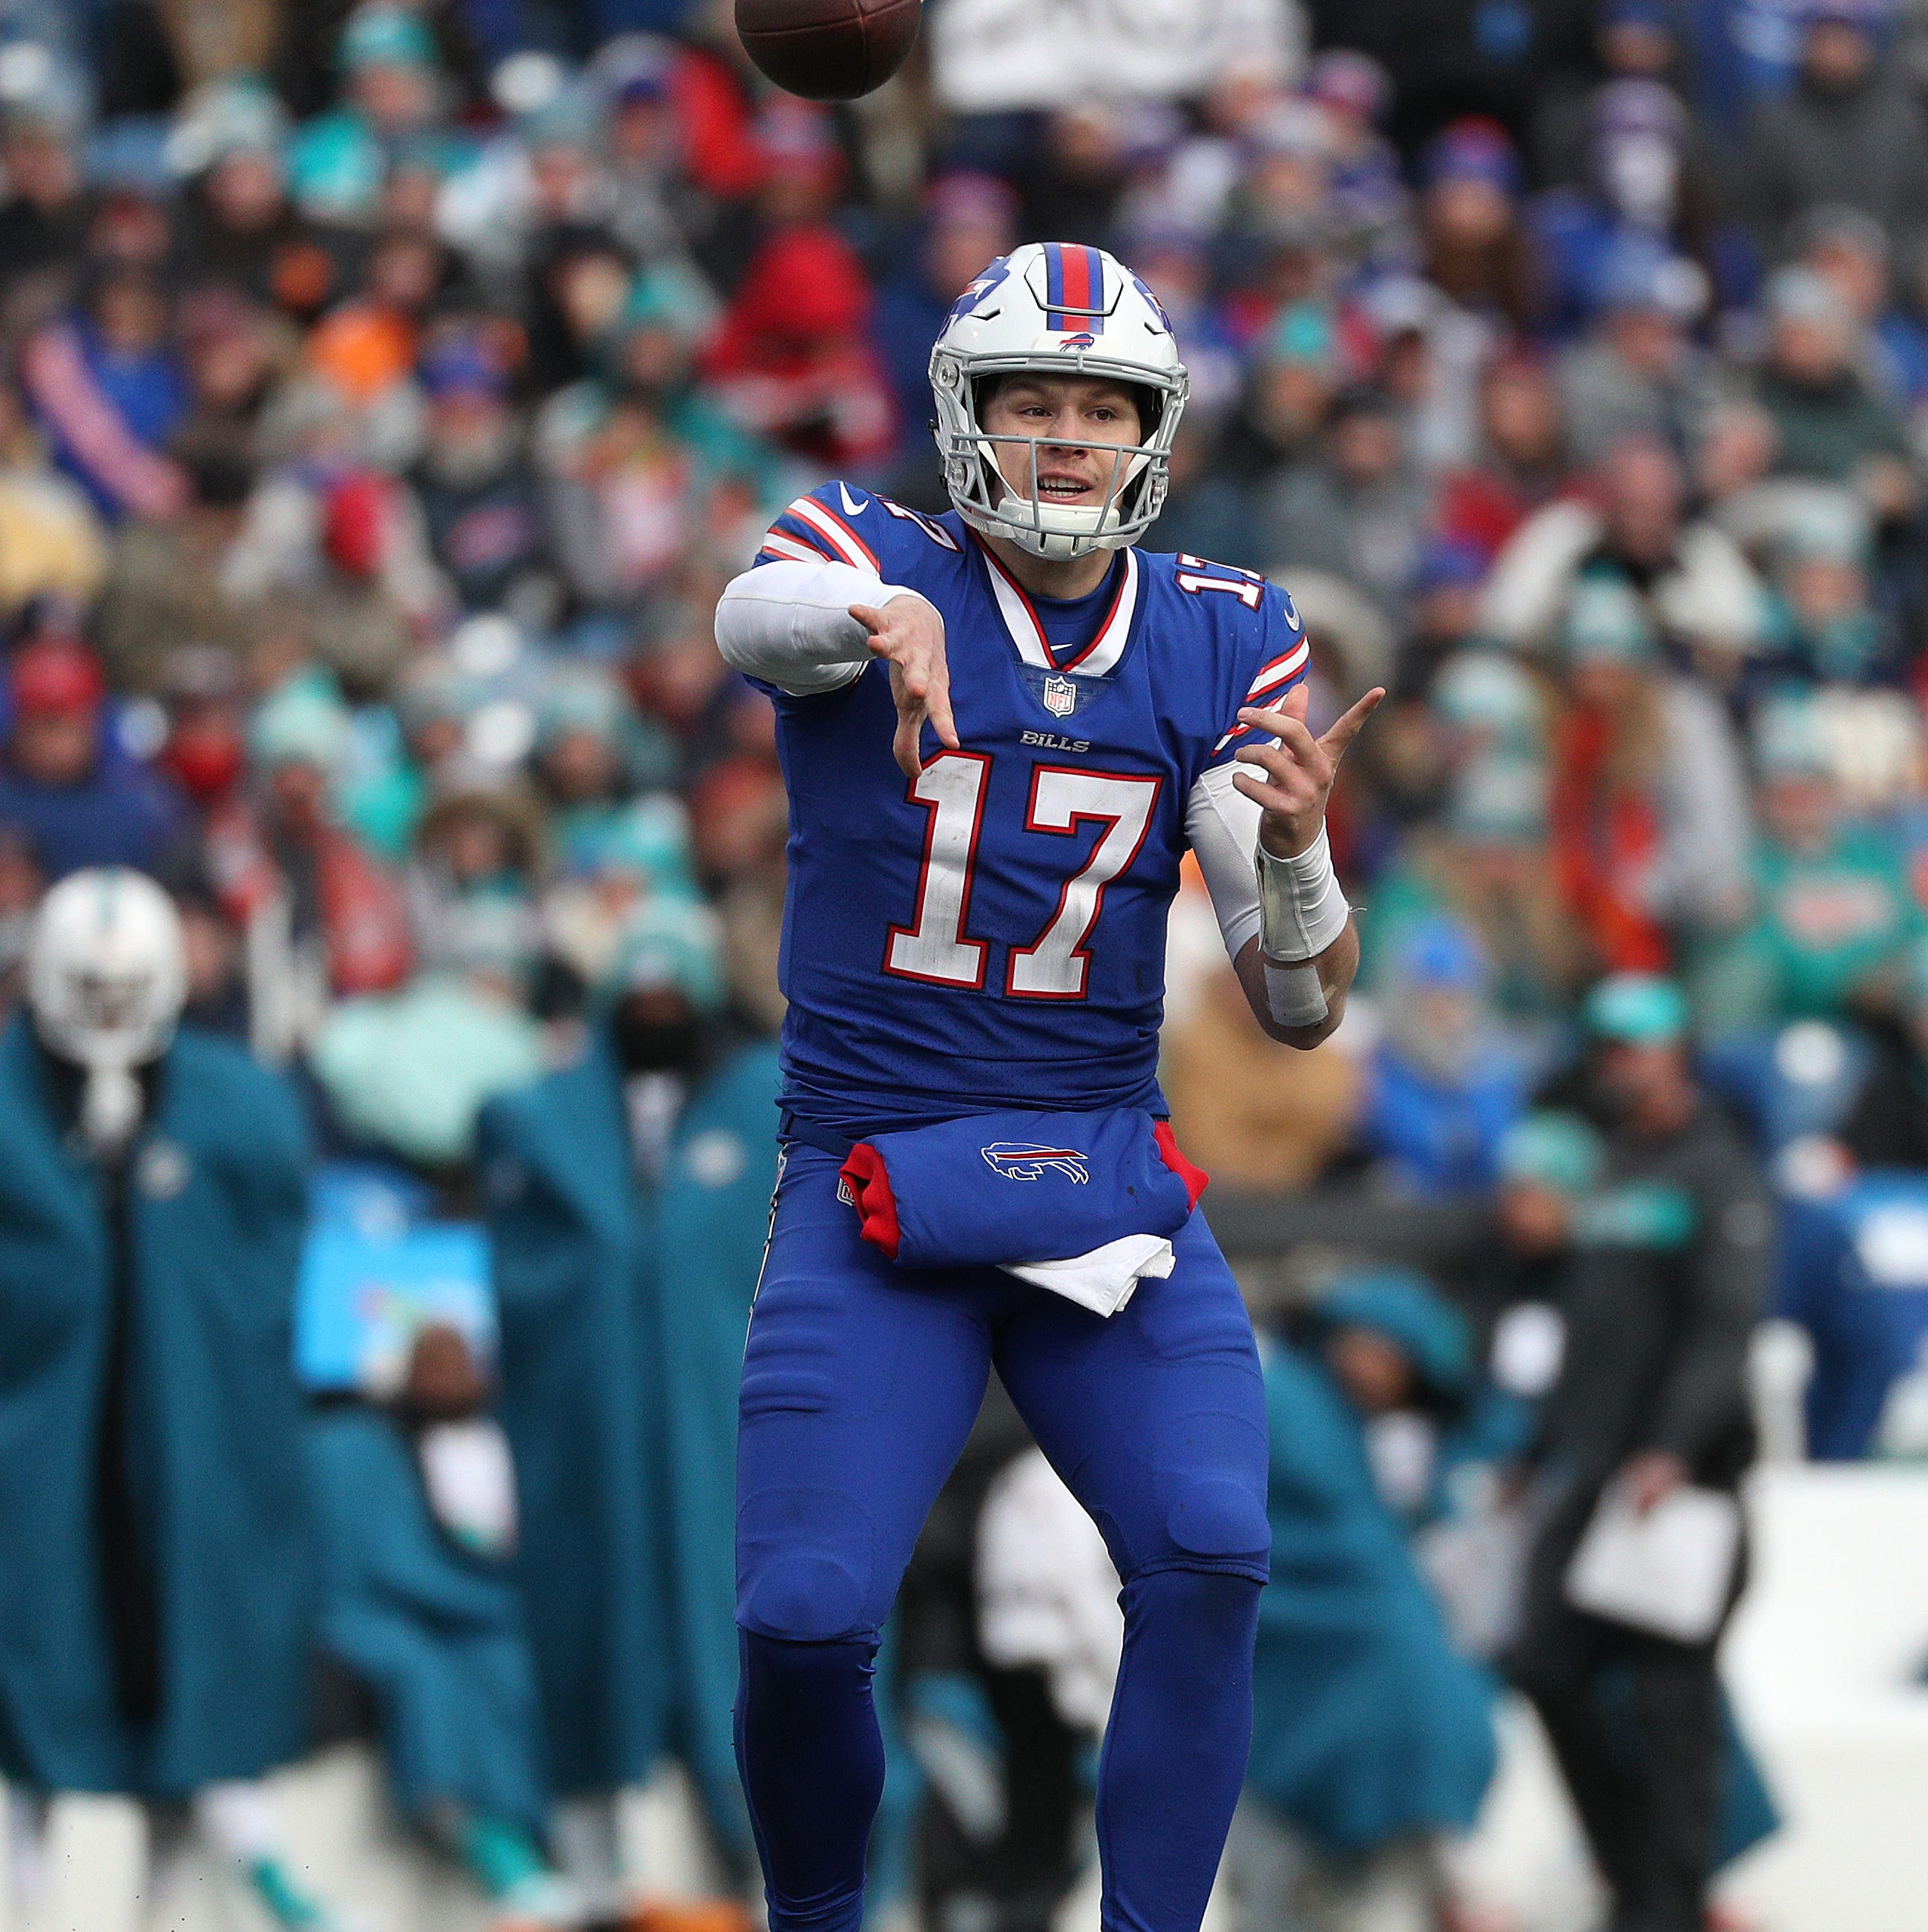 Bills quarterback Josh Allen inspired by Patrick Mahomes' early success with Chiefs